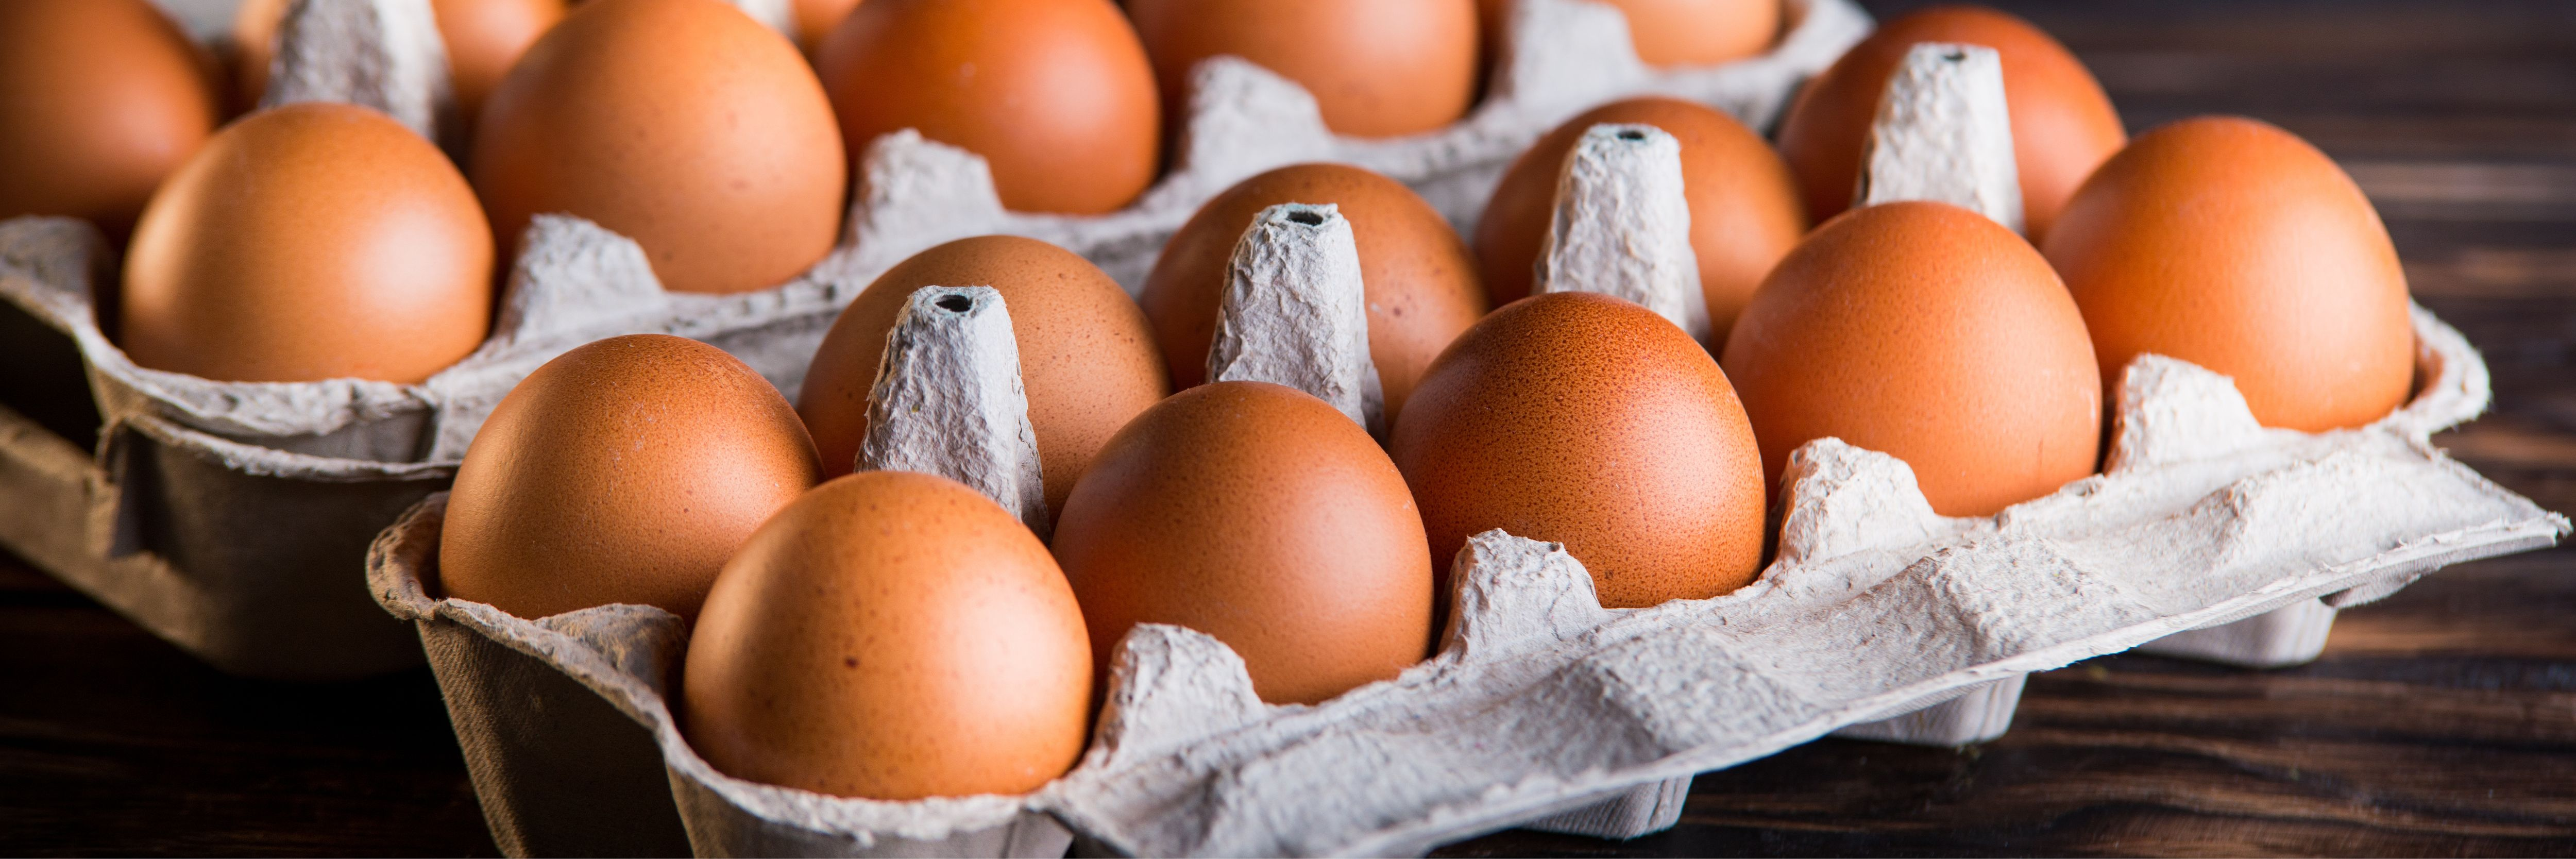 Consumer Demand for Eggs Grows Worldwide